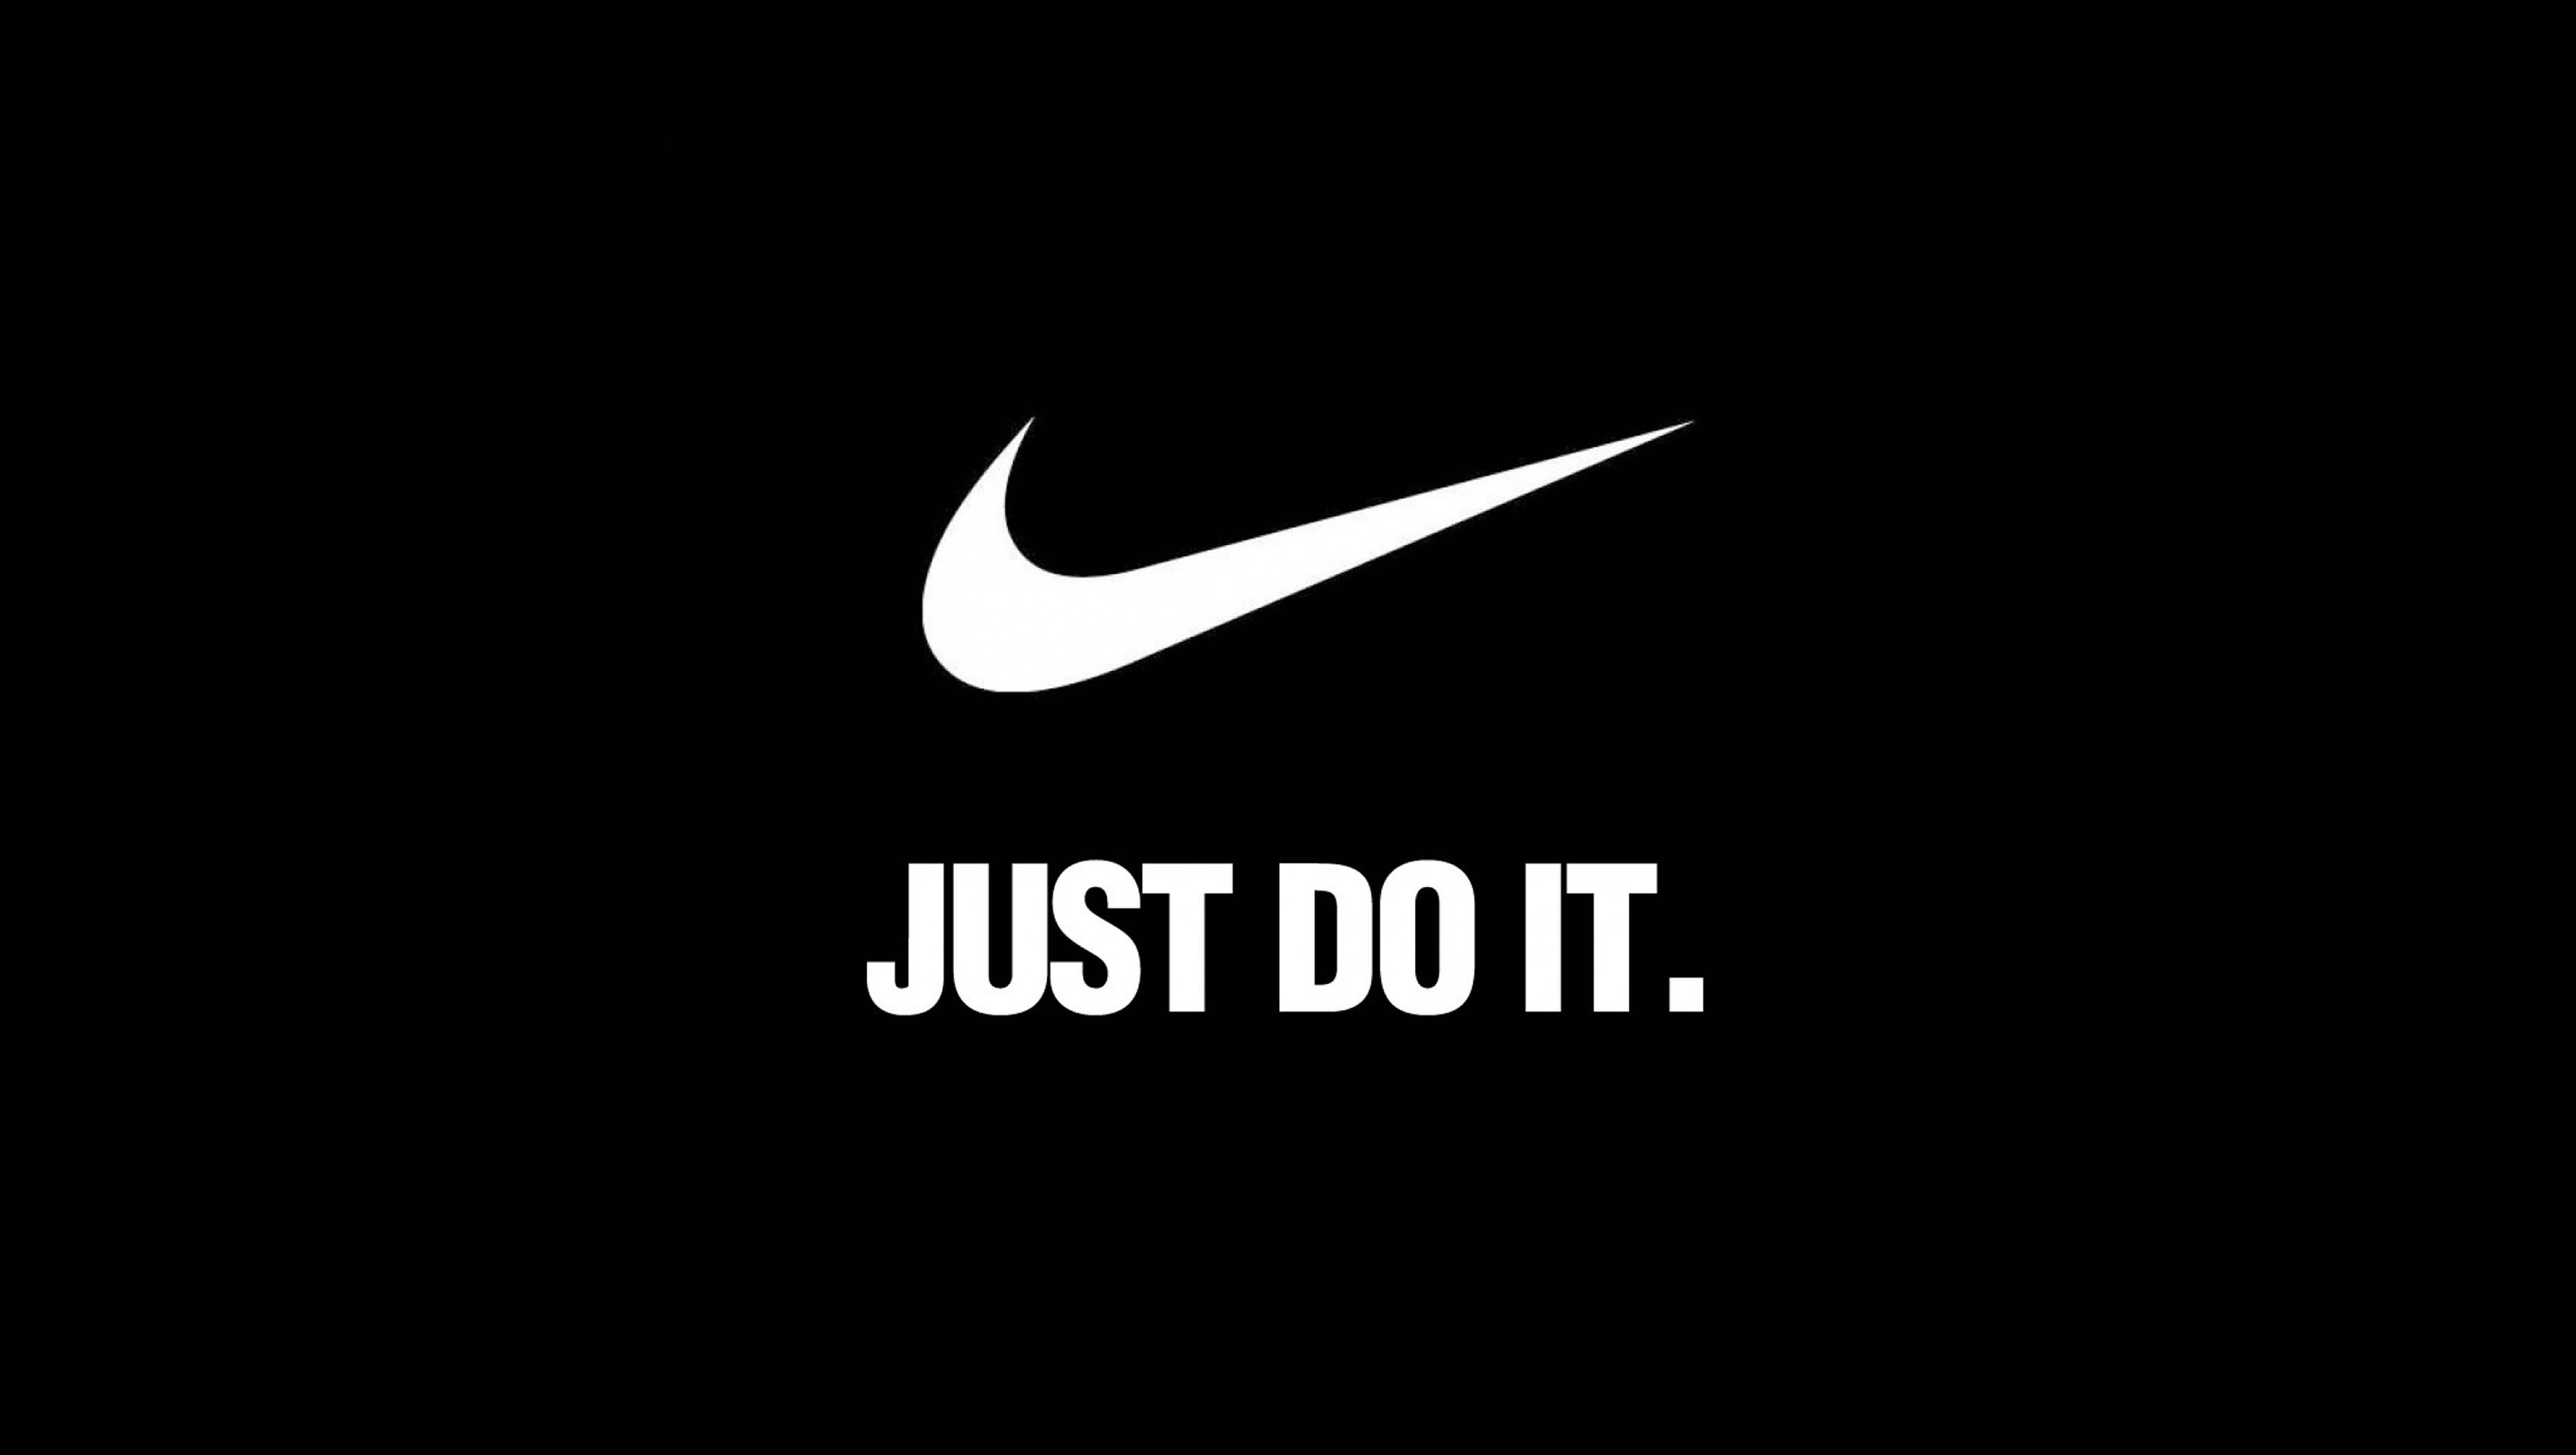 Nike Laptop Wallpaper Tumblr: Nike Soccer Wallpapers 2017